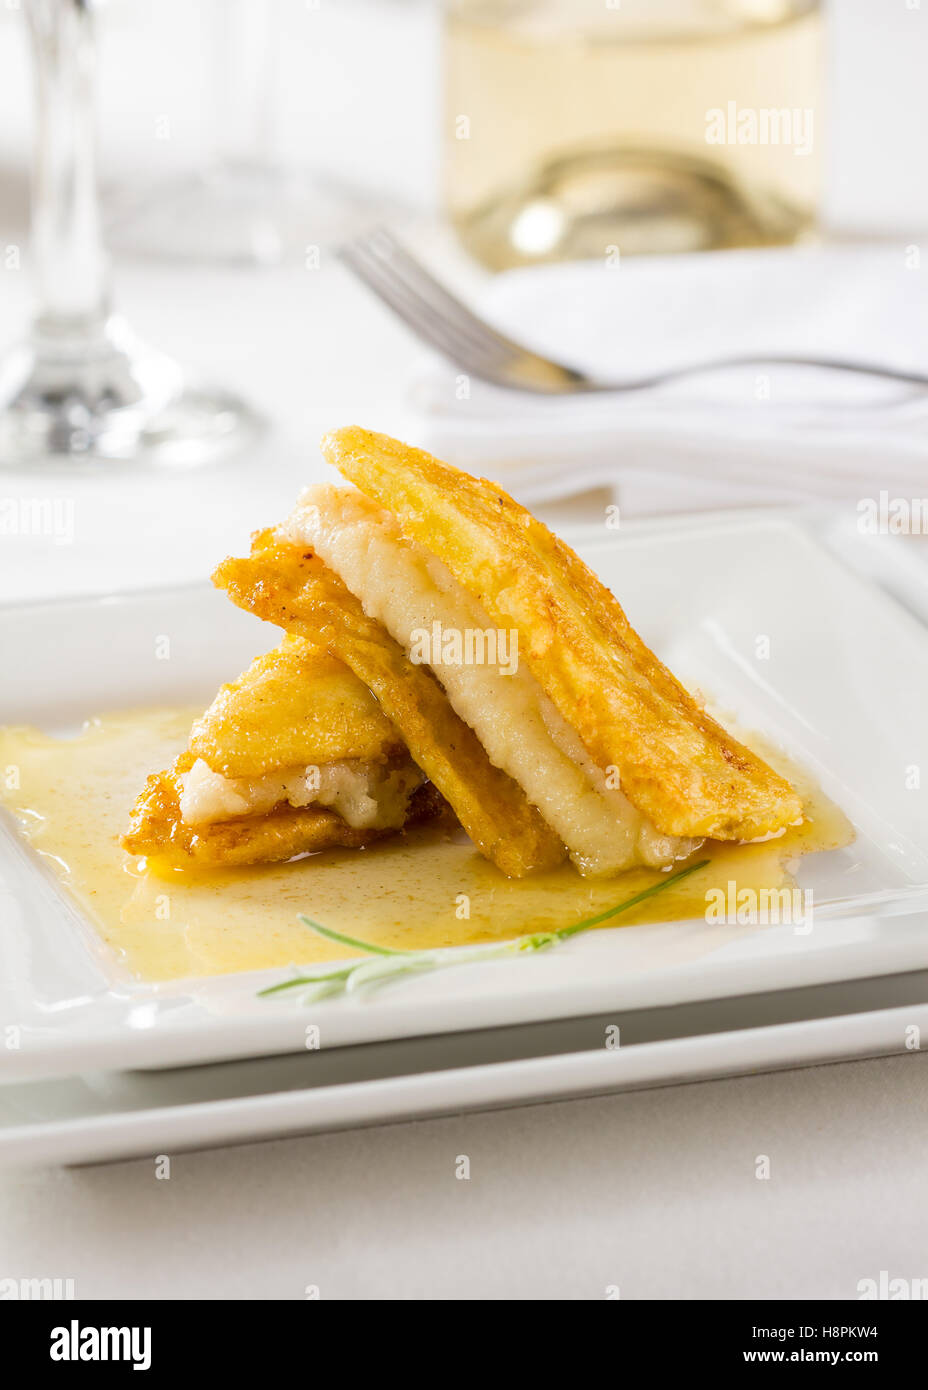 Sole fish fillet, served with banana an a sauce. - Stock Image